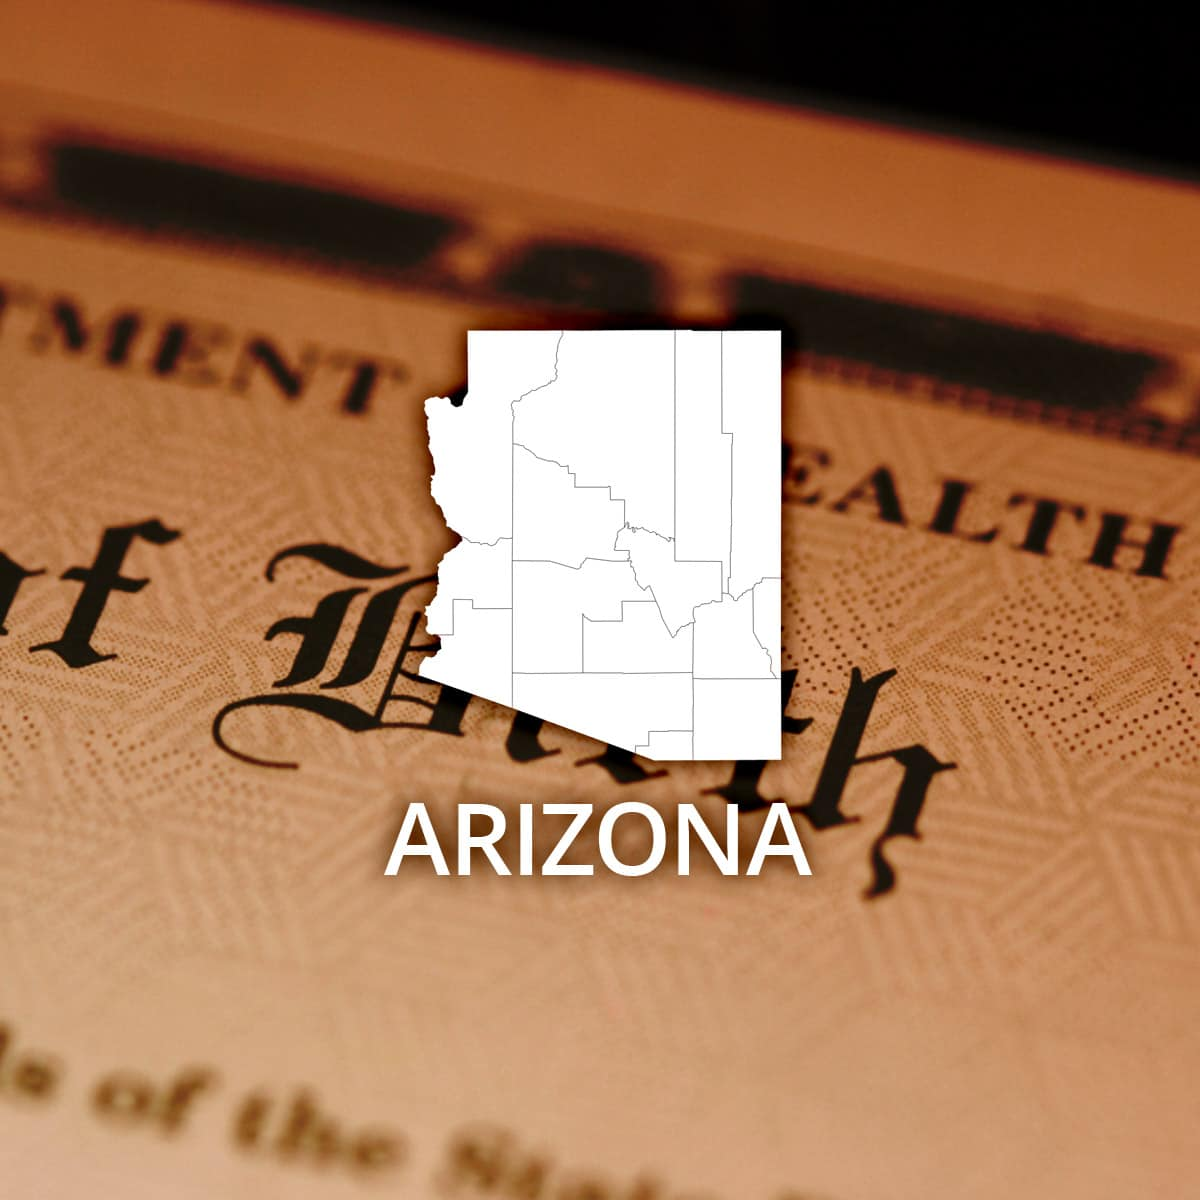 Where to Obtain an Arizona Birth Certificate